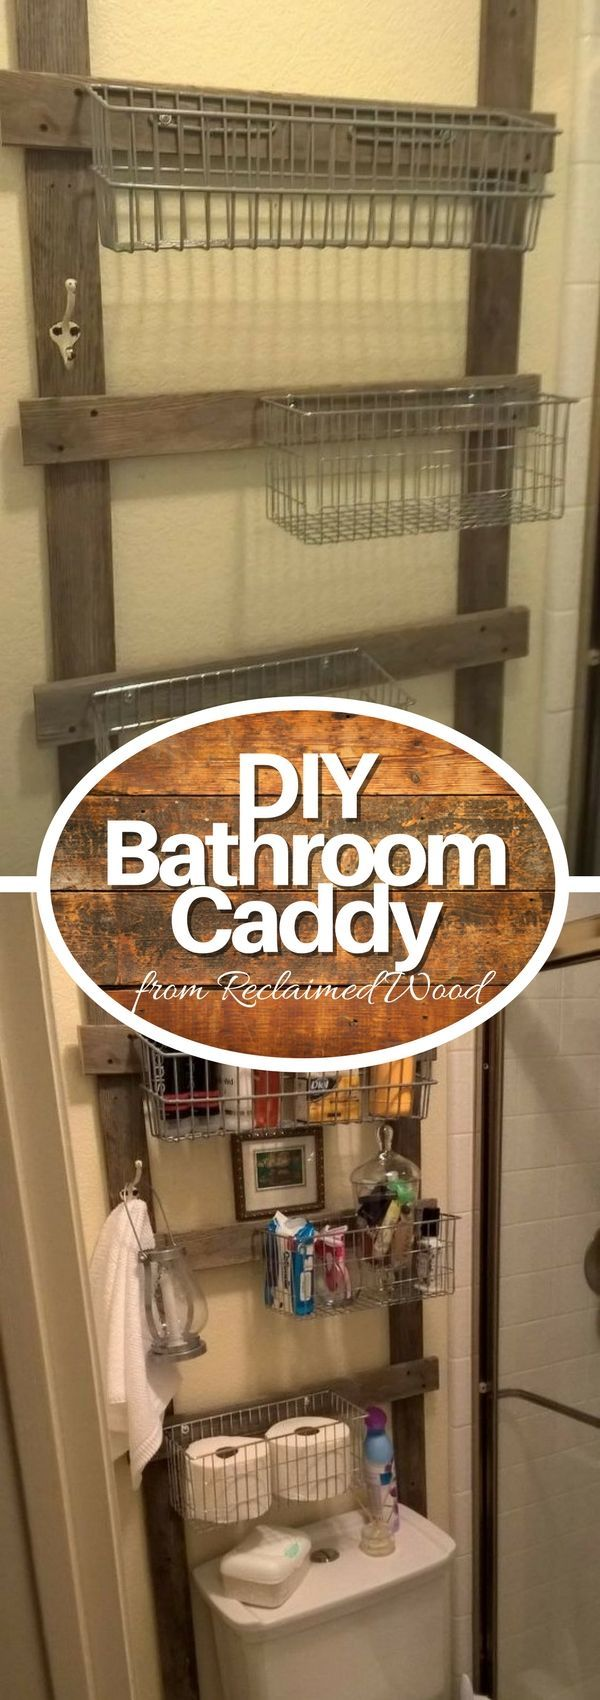 Rustic bathroom storage - 15 Charming Diy Storage Solutions For A Small Bathroom